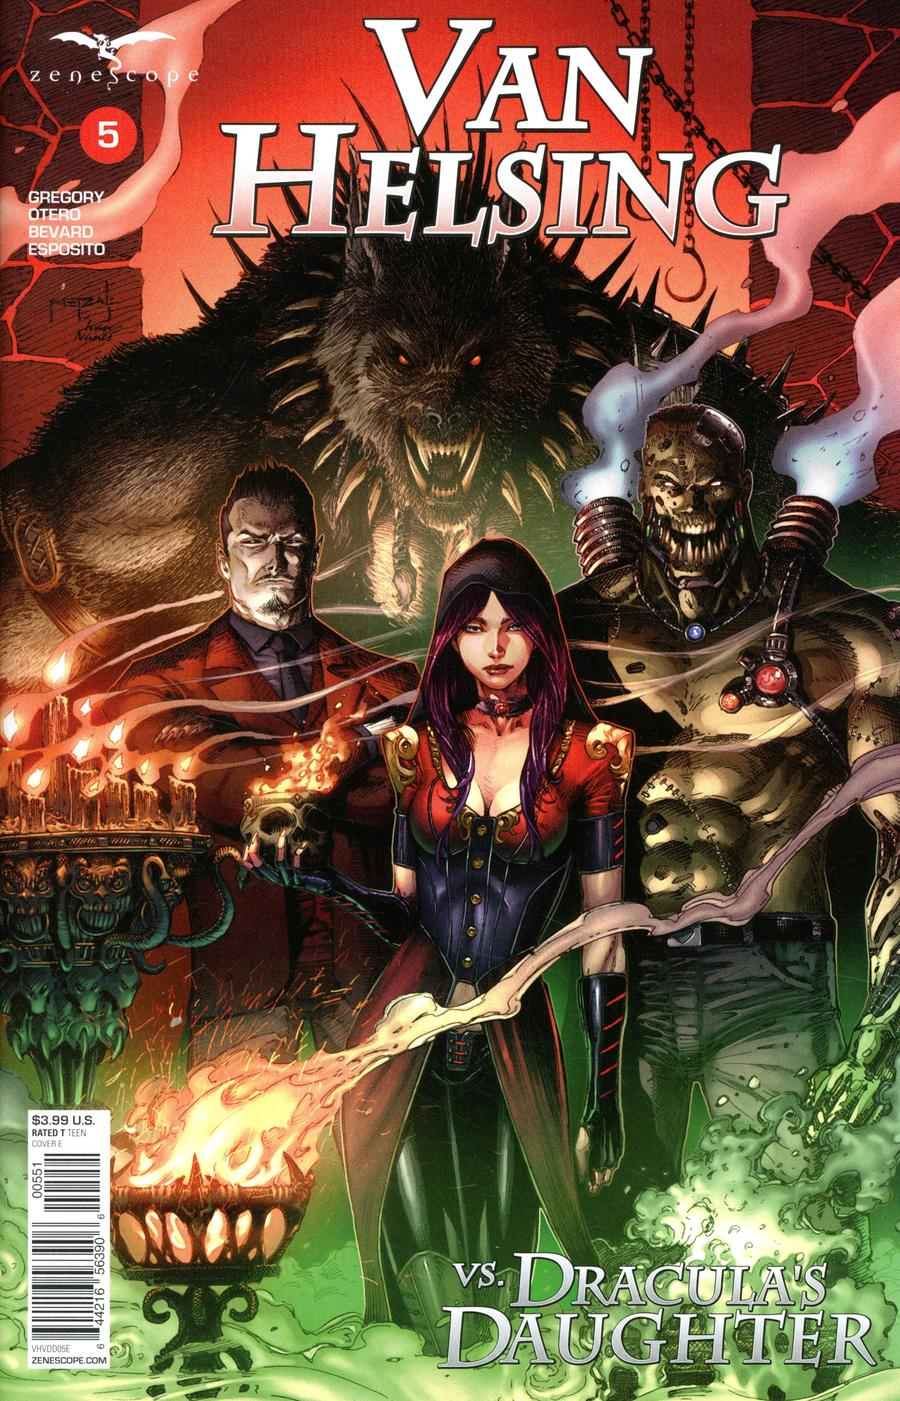 Grimm Fairy Tales Presents Van Helsing vs Draculas Daughter #5 Cover E Jason Metcalf